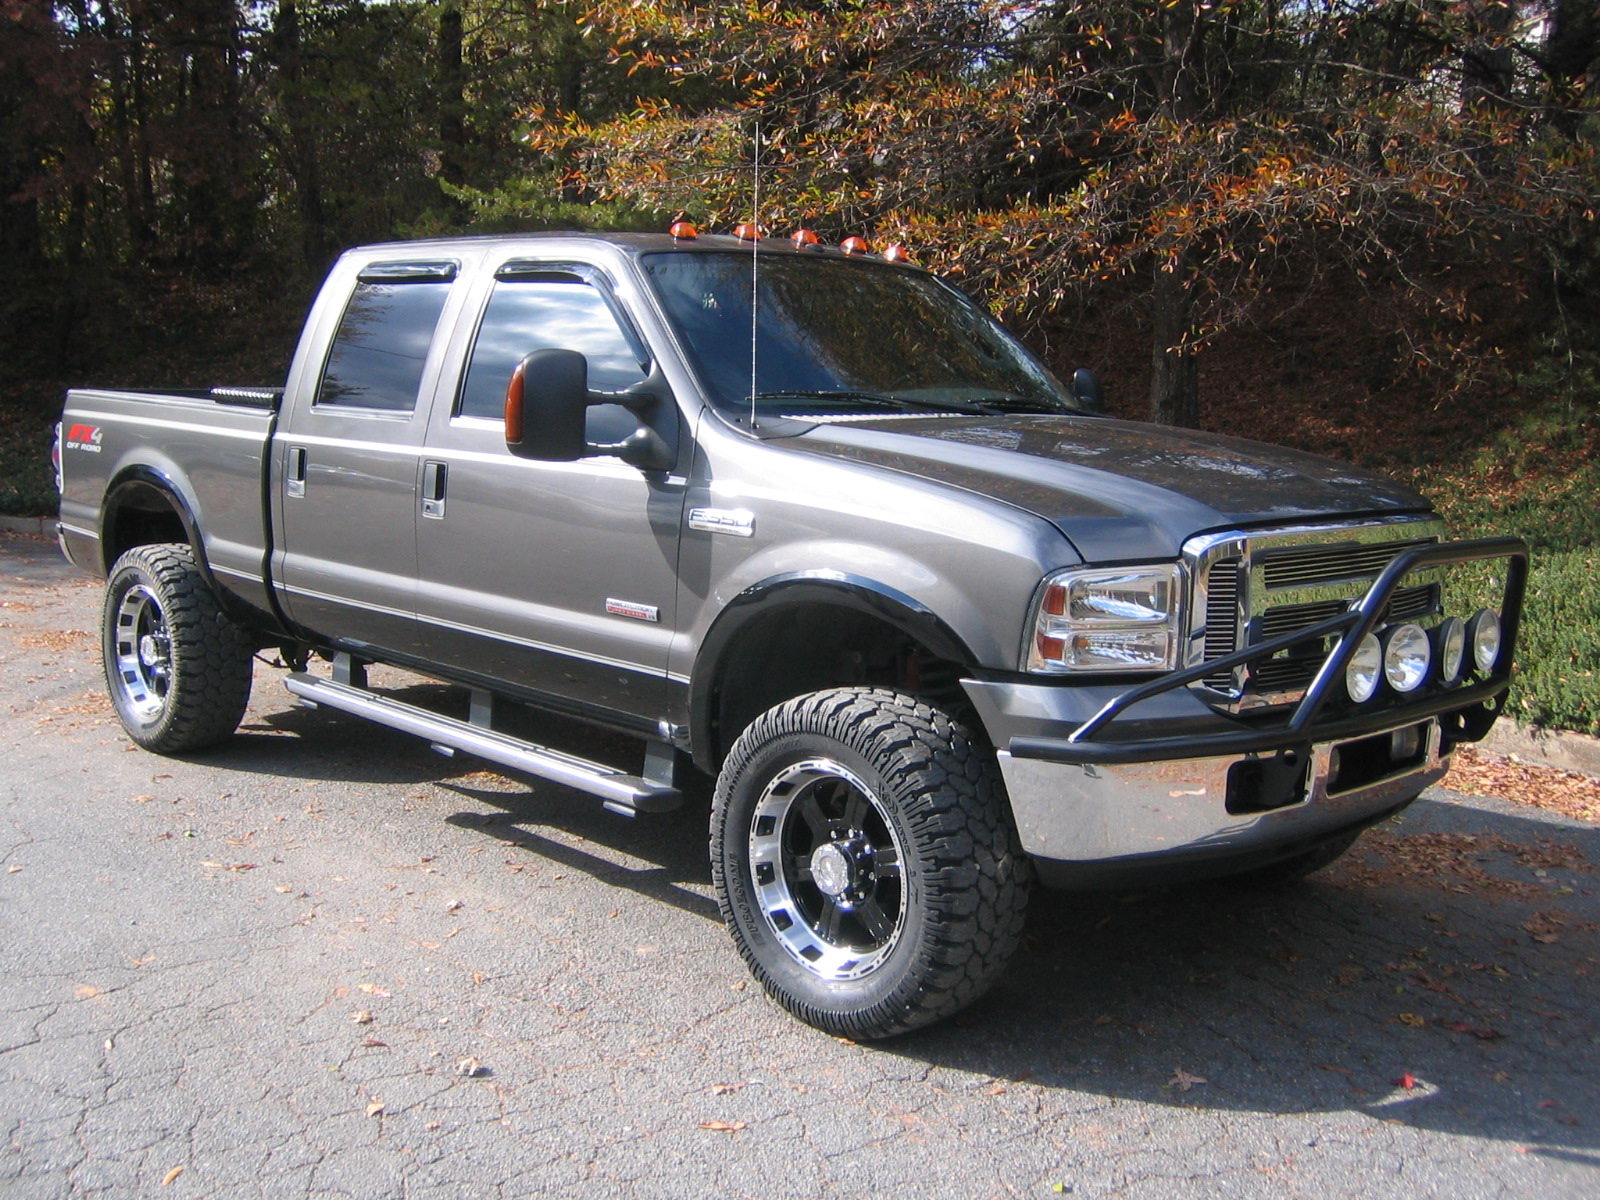 2005 Ford F-350 Super Duty - Pictures - CarGurus